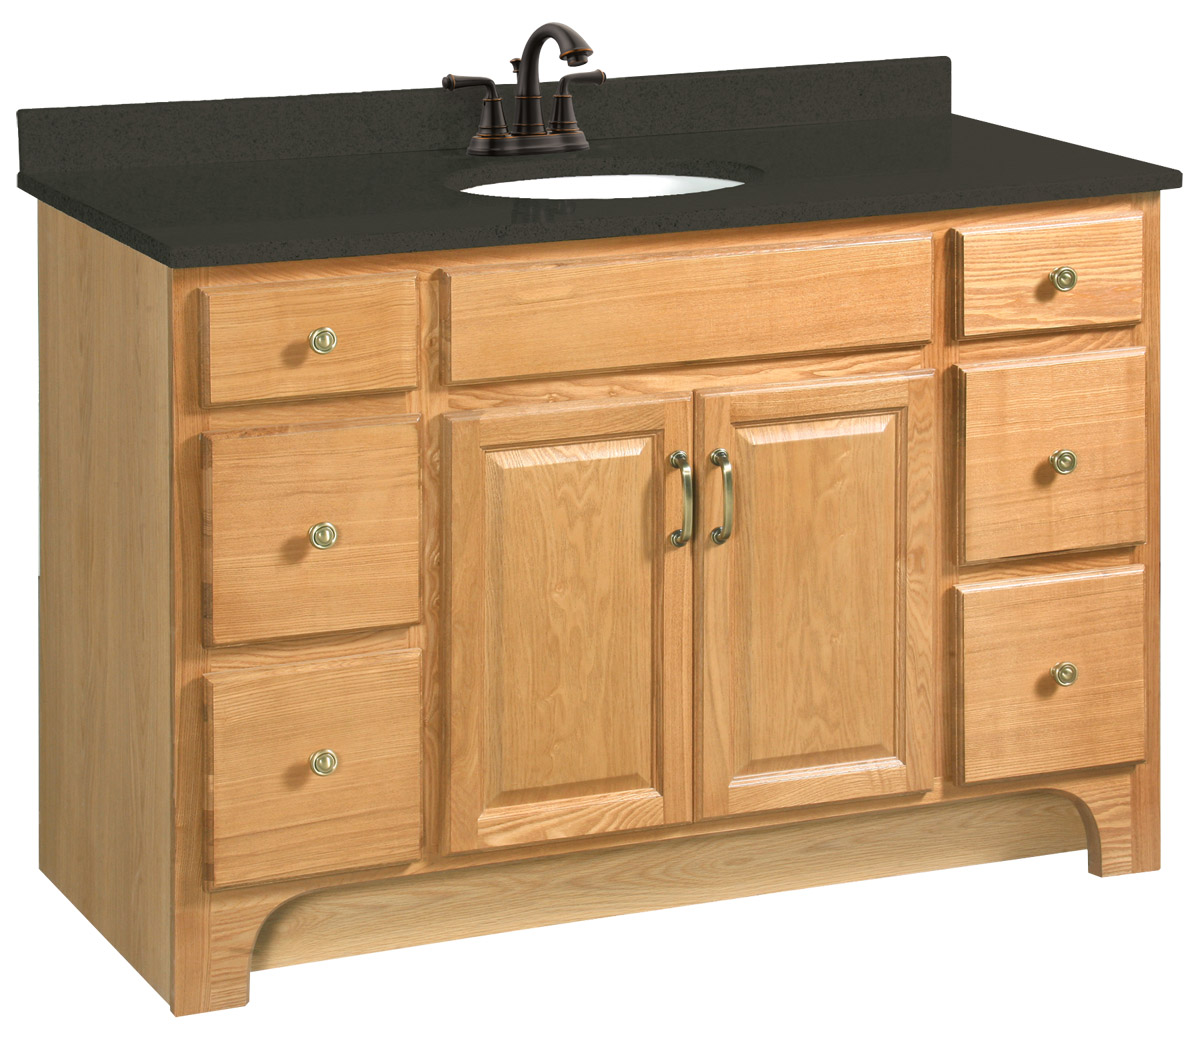 Design House 530410 Richland Nutmeg Oak Vanity Cabinet with 2-Doors and 4-Drawers 48-Inches by 33.5-Inches